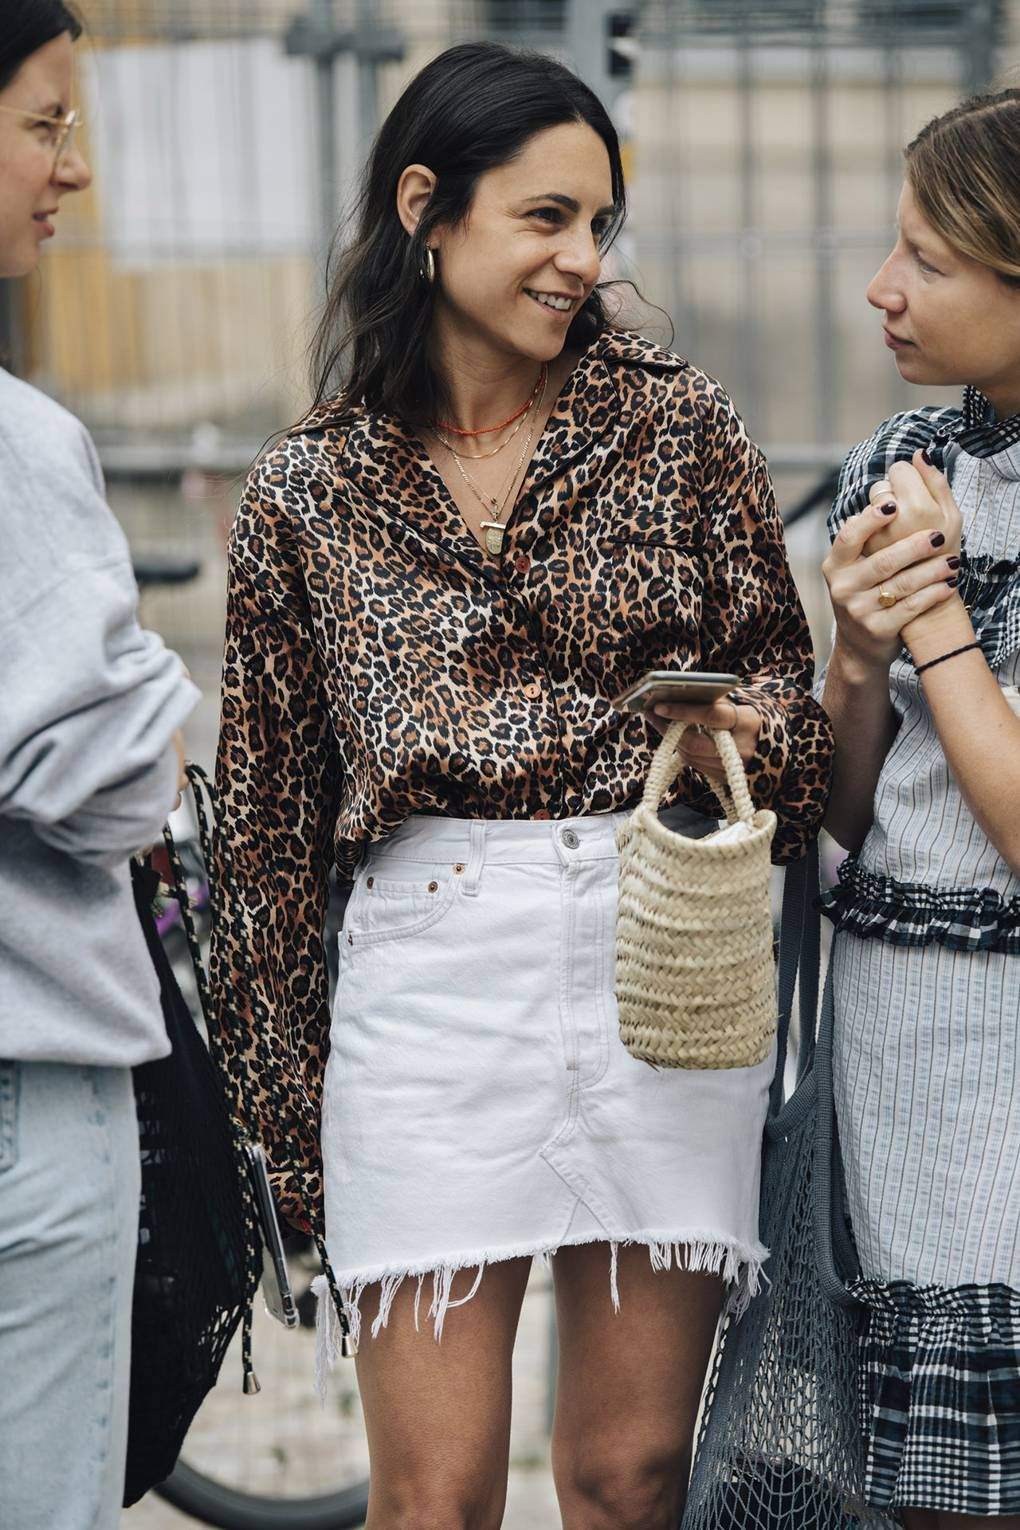 How to wear white denim skirt for summer outfit idea with leopard print shirt, layered necklaces and straw basket tote bag